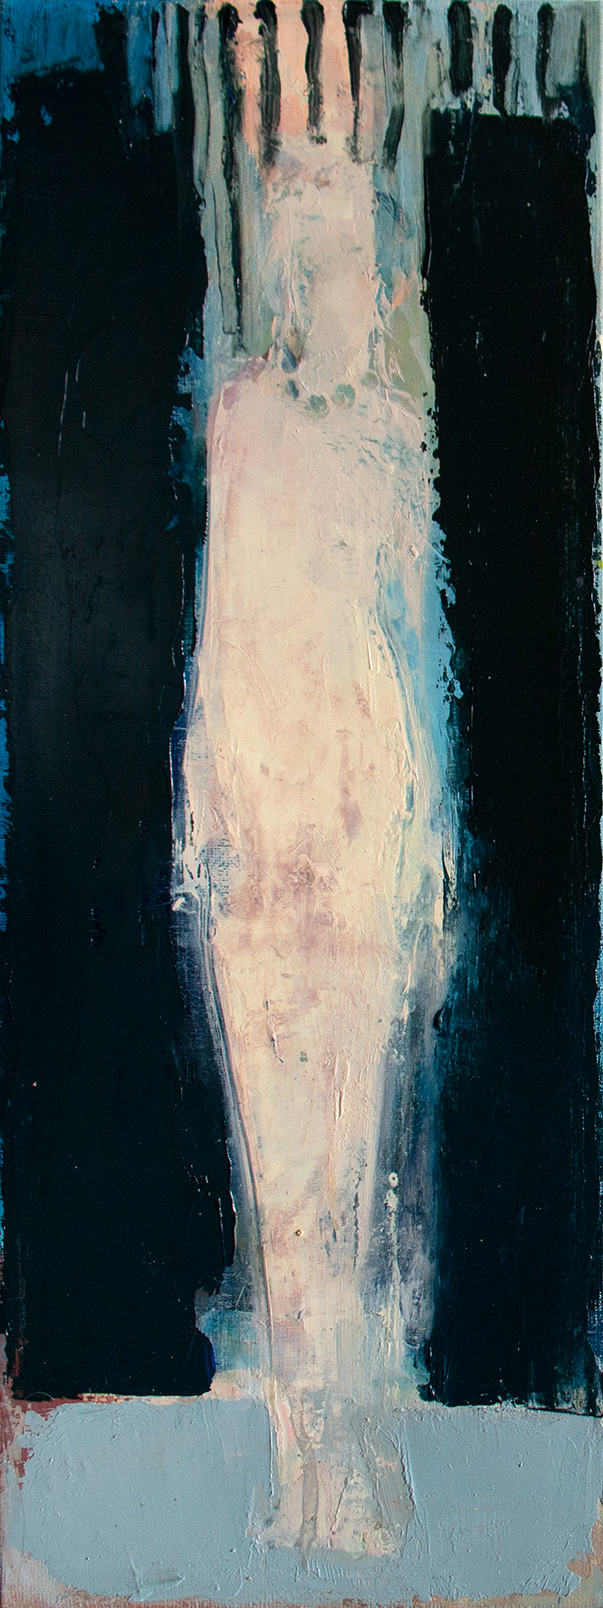 Ing Aru_Blue I_2018_oil on canvas_40 x 15 cm